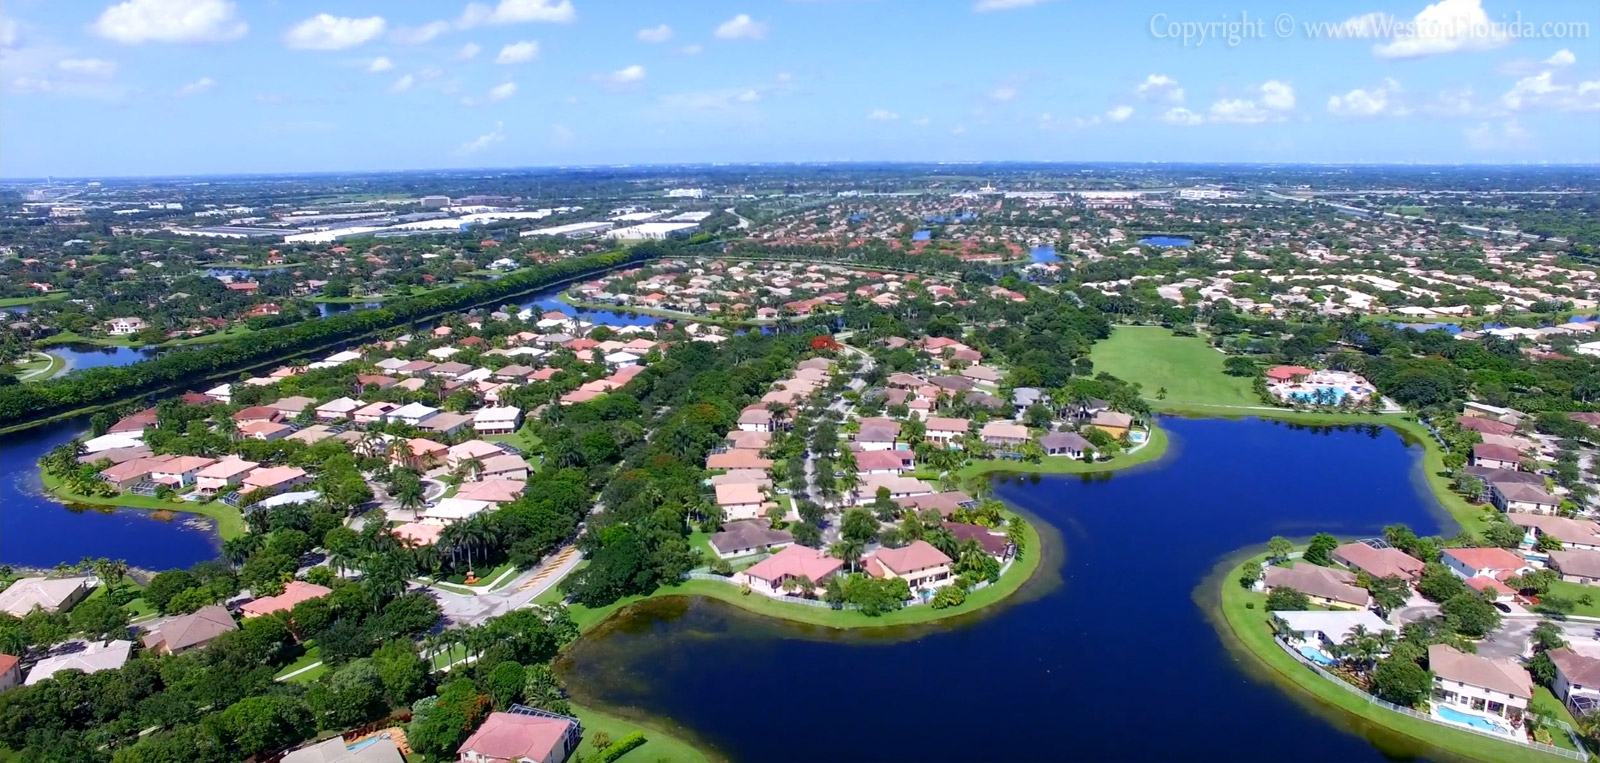 Weston Florida aerial view